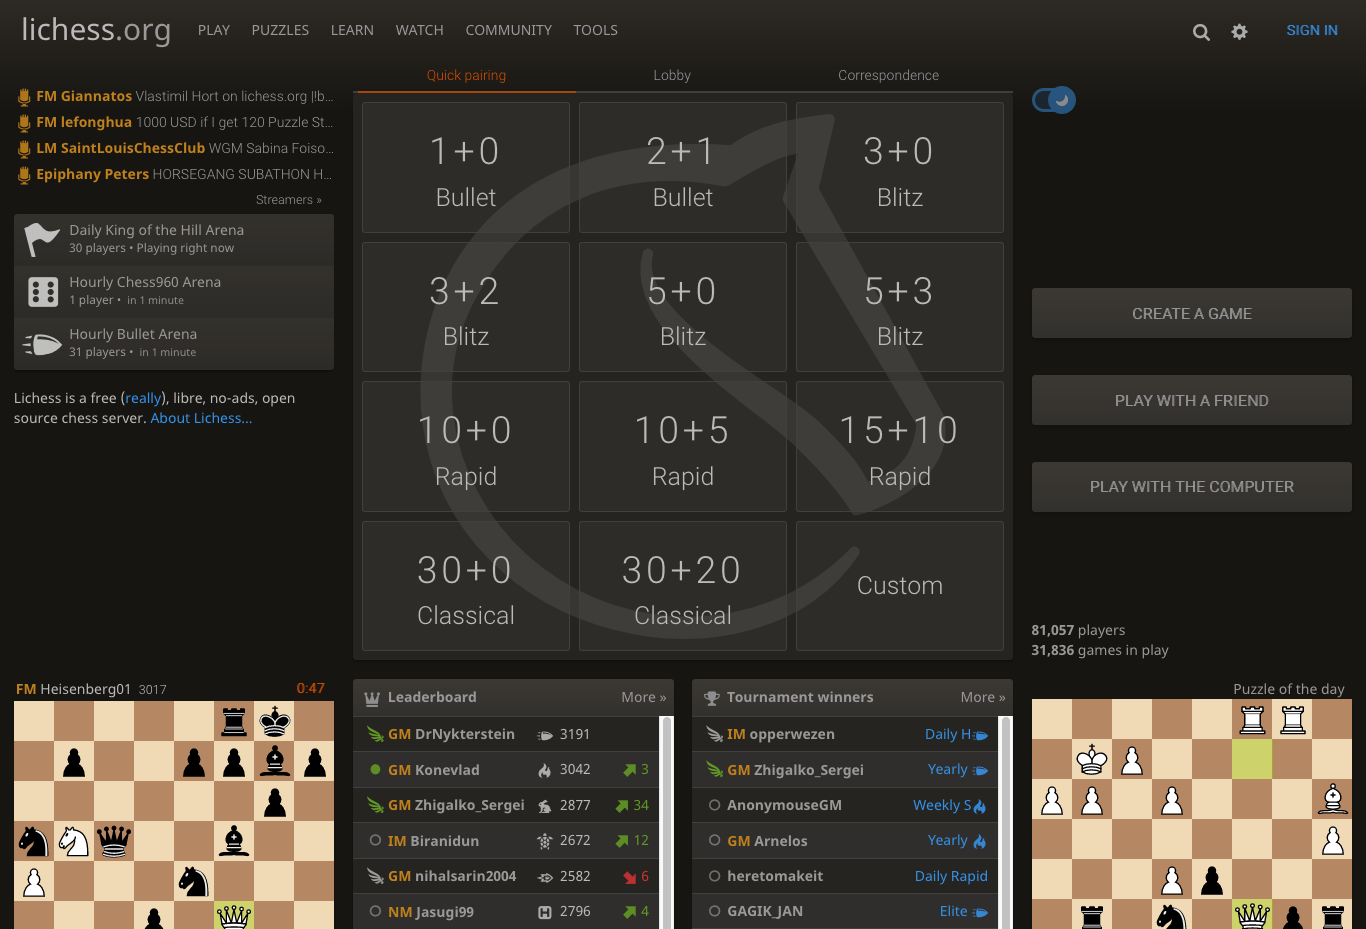 The home page of Lichess.org